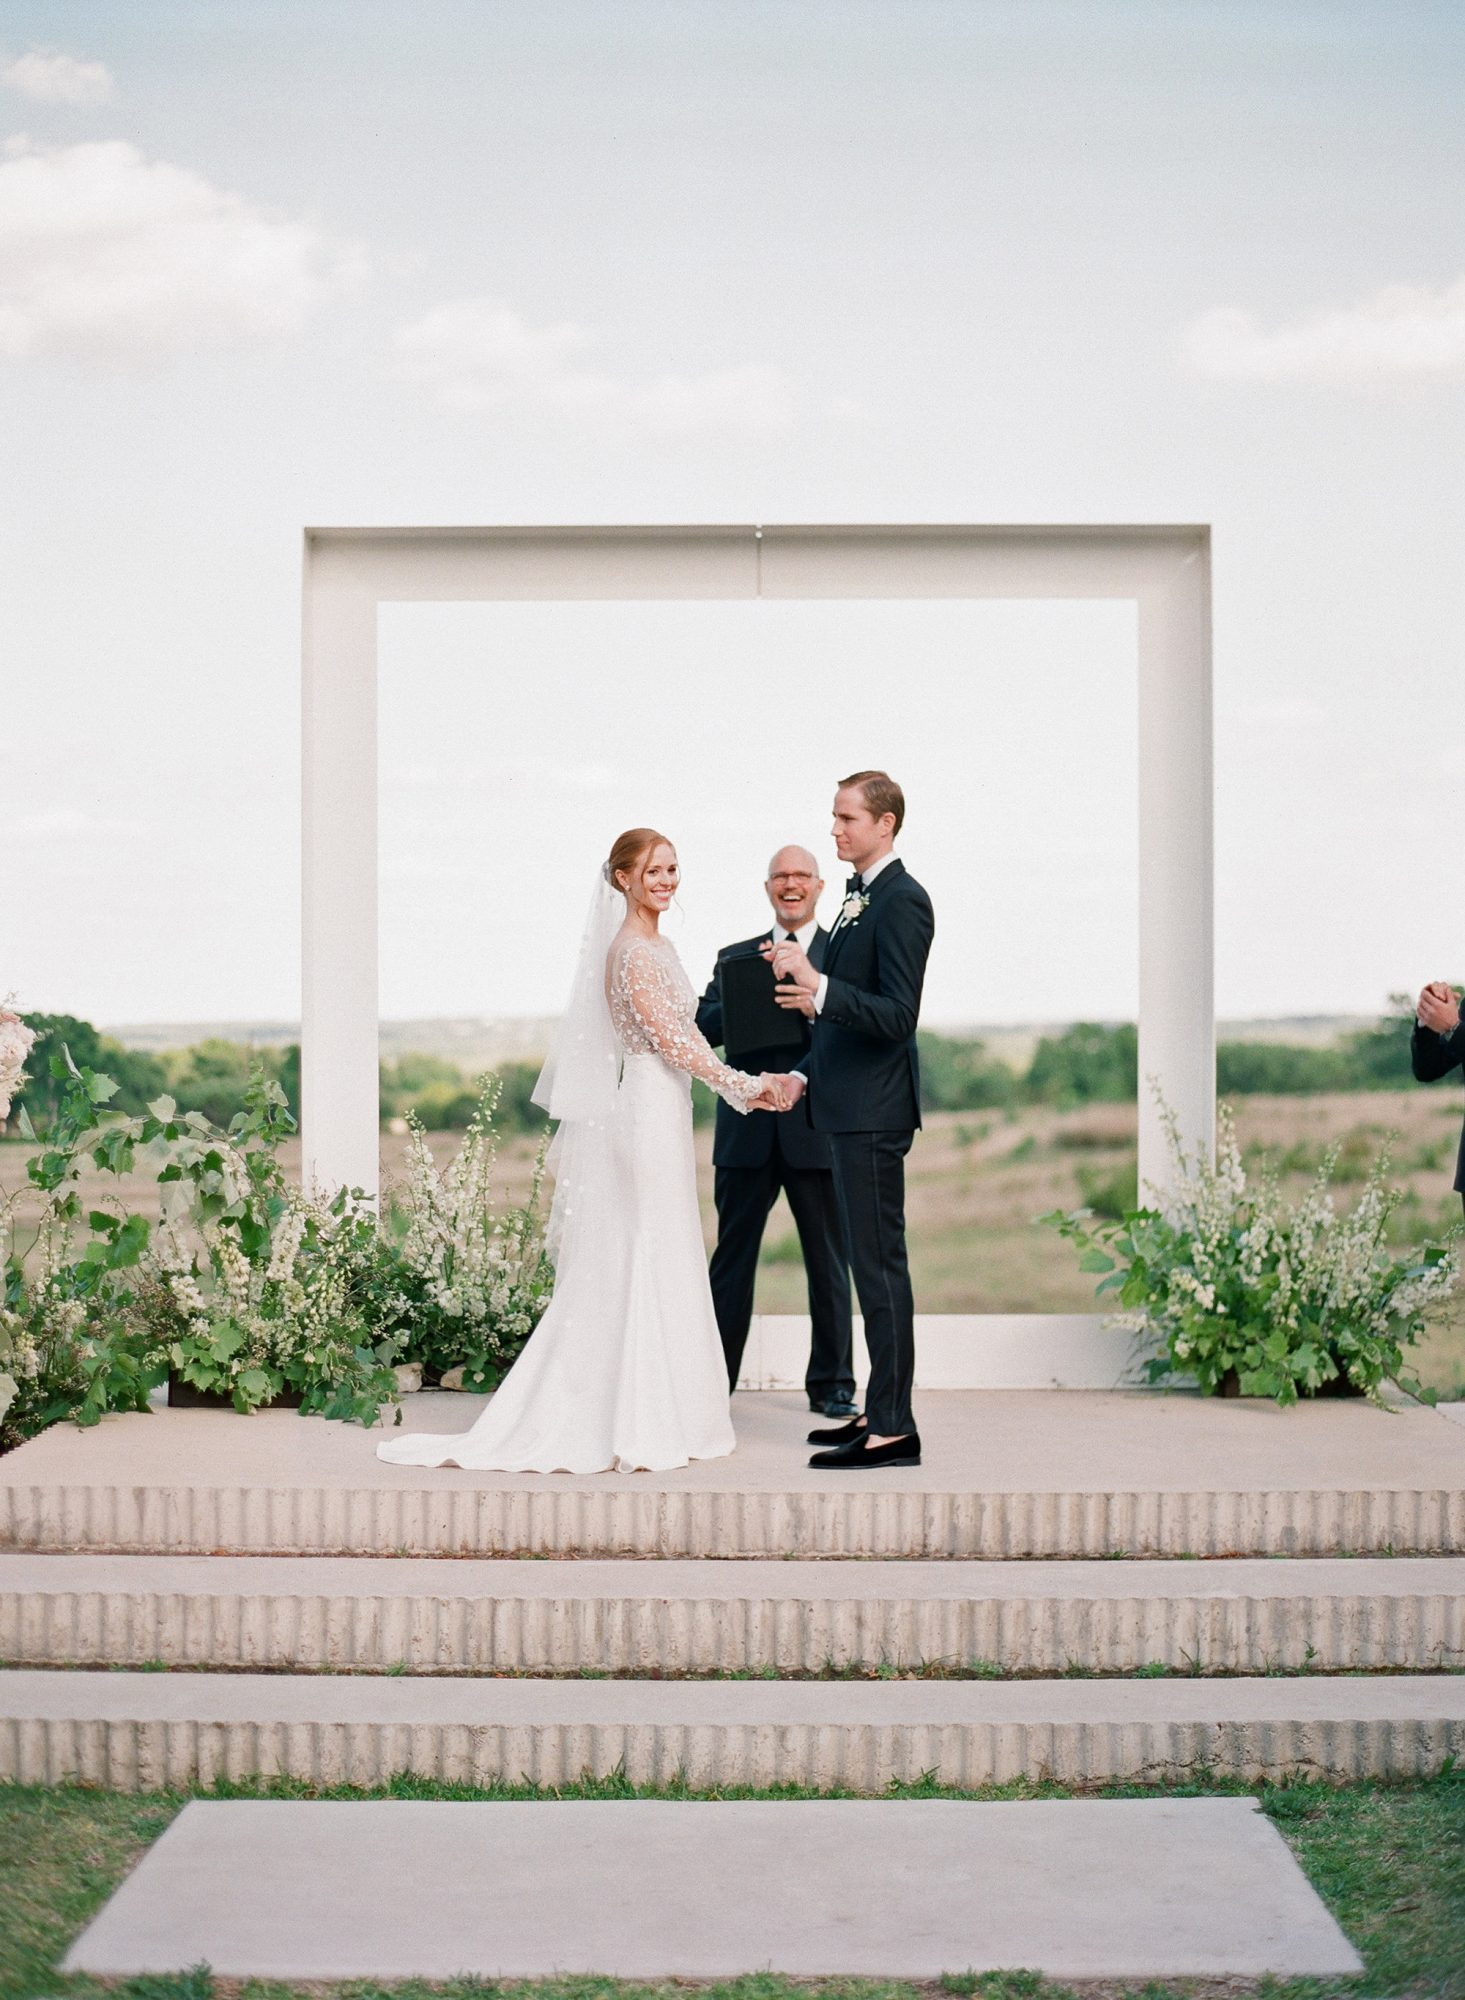 brittany peter wedding ceremony bride and groom and officiant